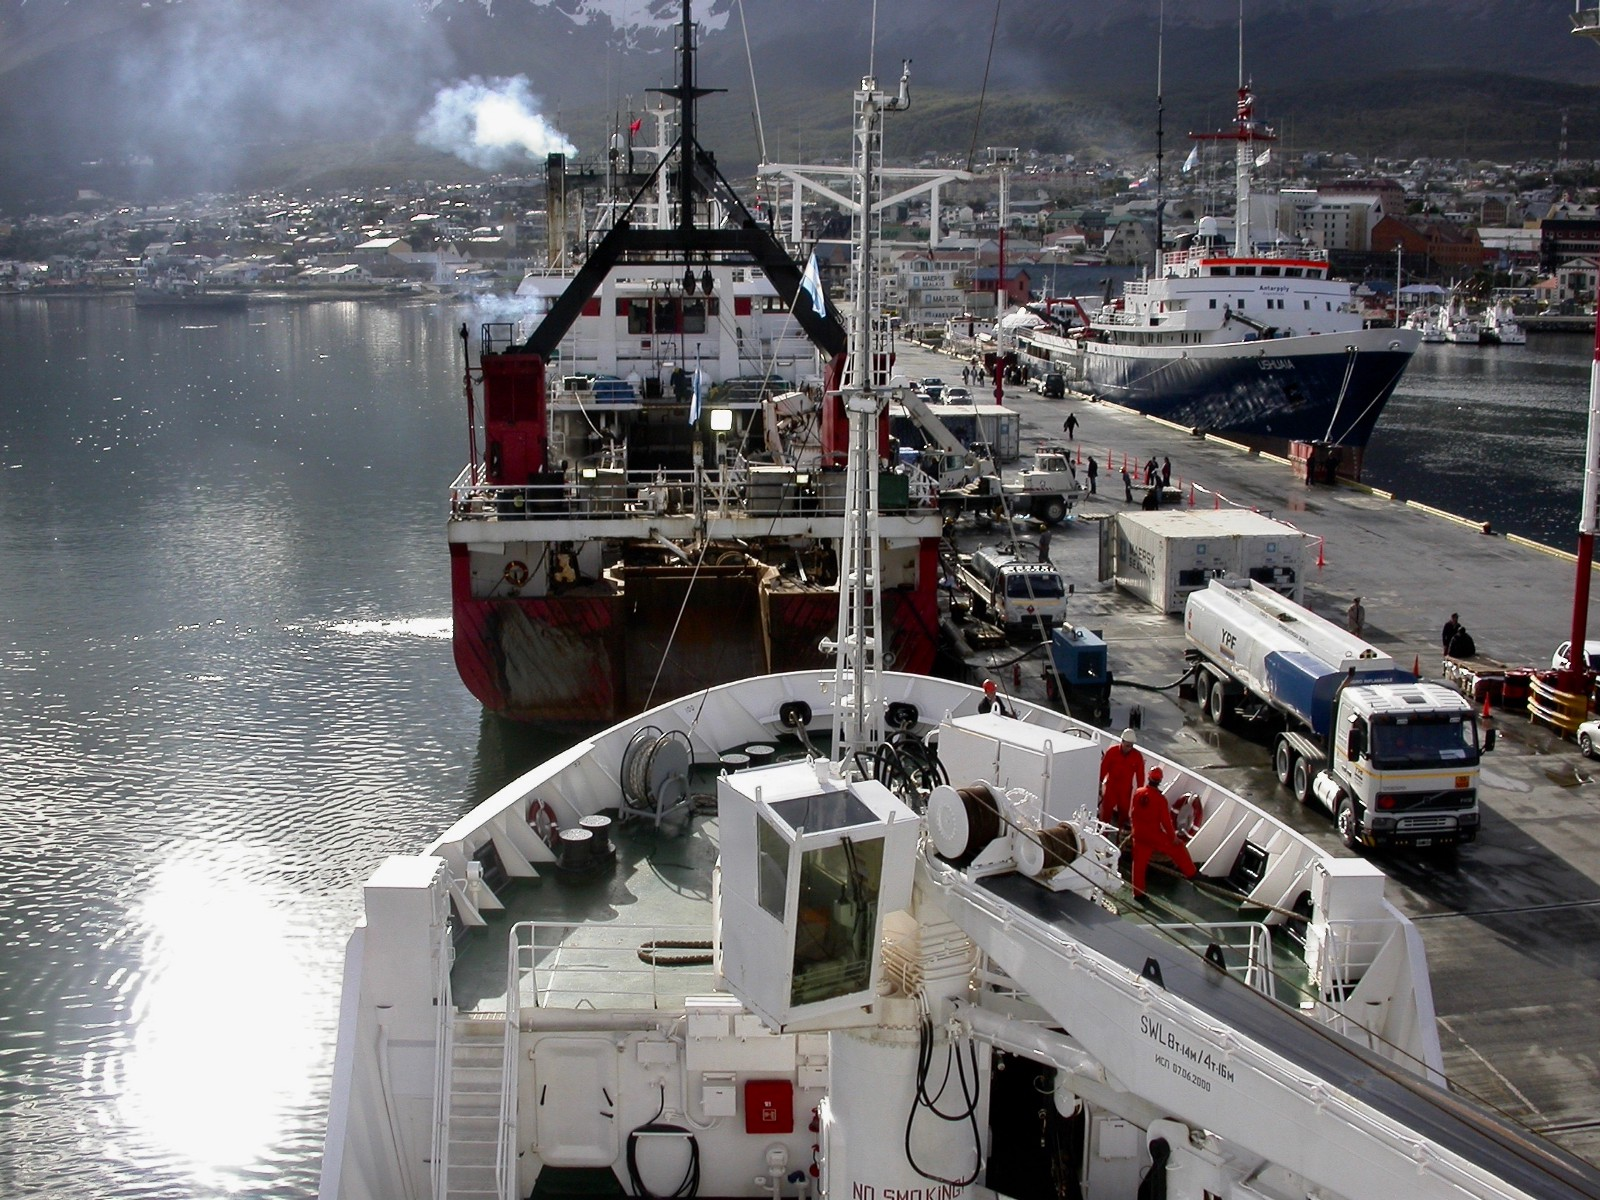 Ushuaia  harbor — Crossing  The Drake Passage  the next two days (5 February 2003)